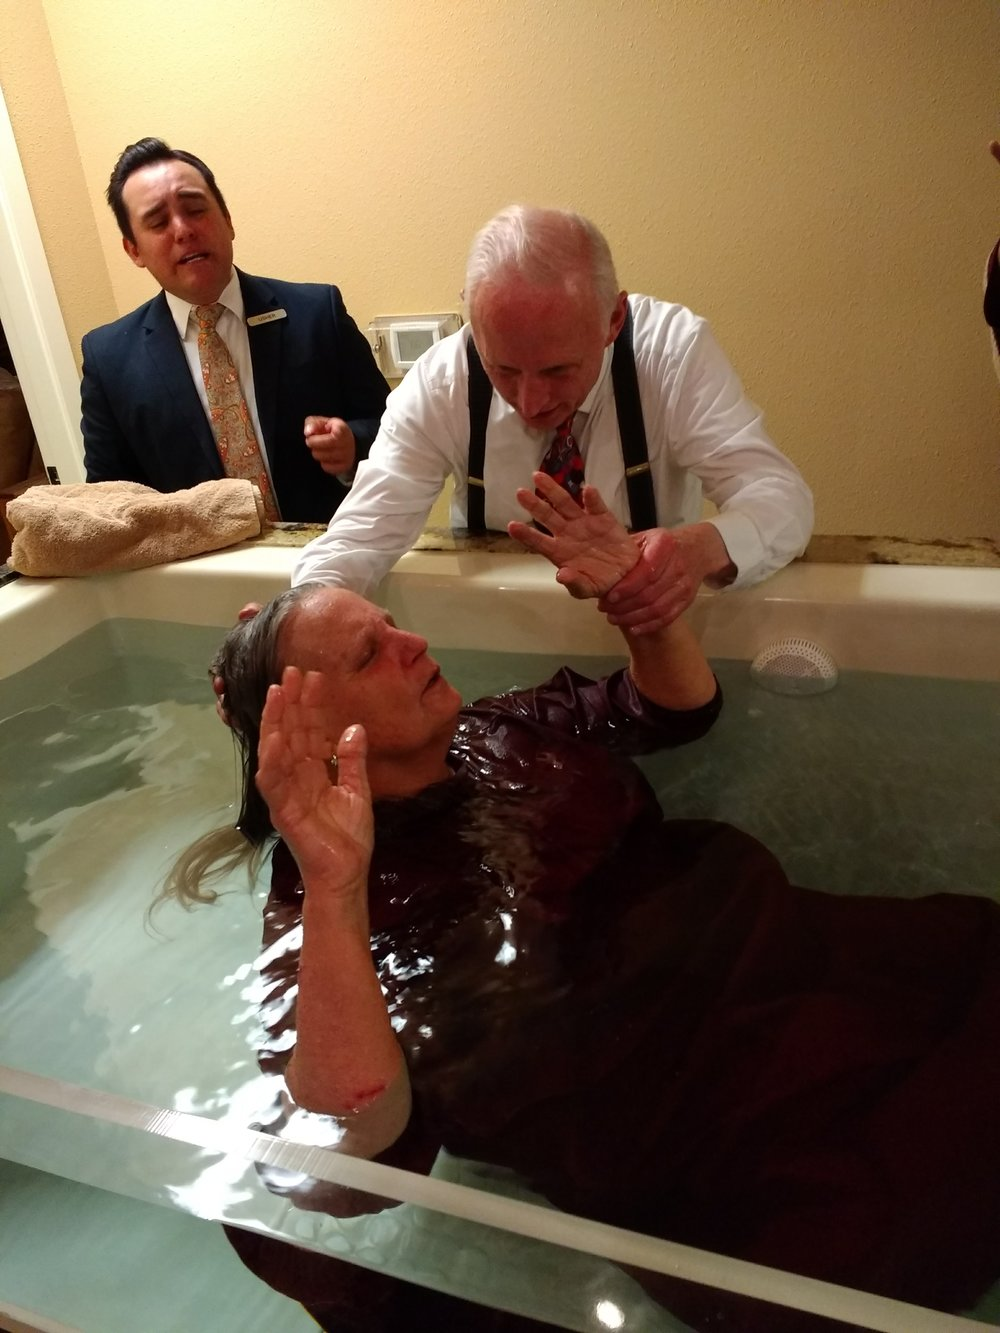 Glenda receiving the Holy Ghost